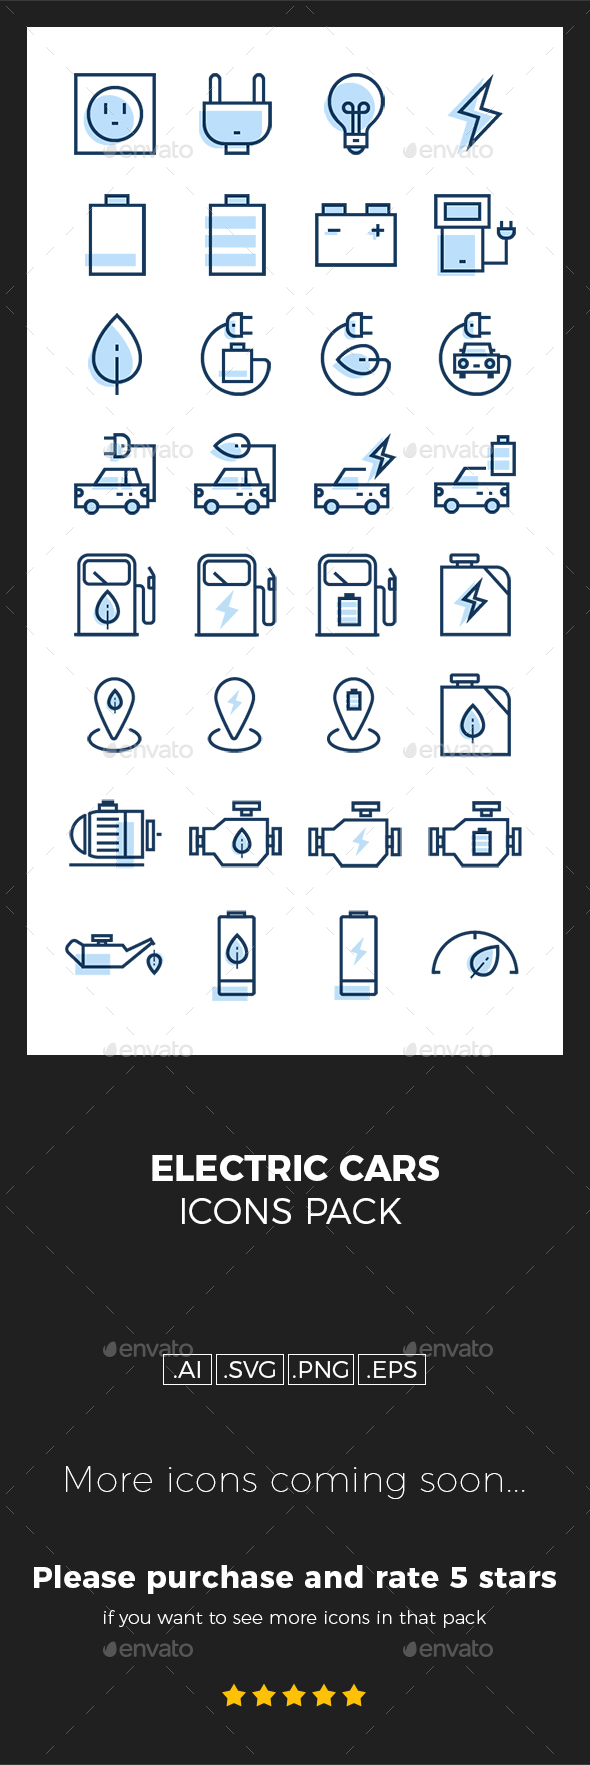 Electric cars icons pack - Technology Icons